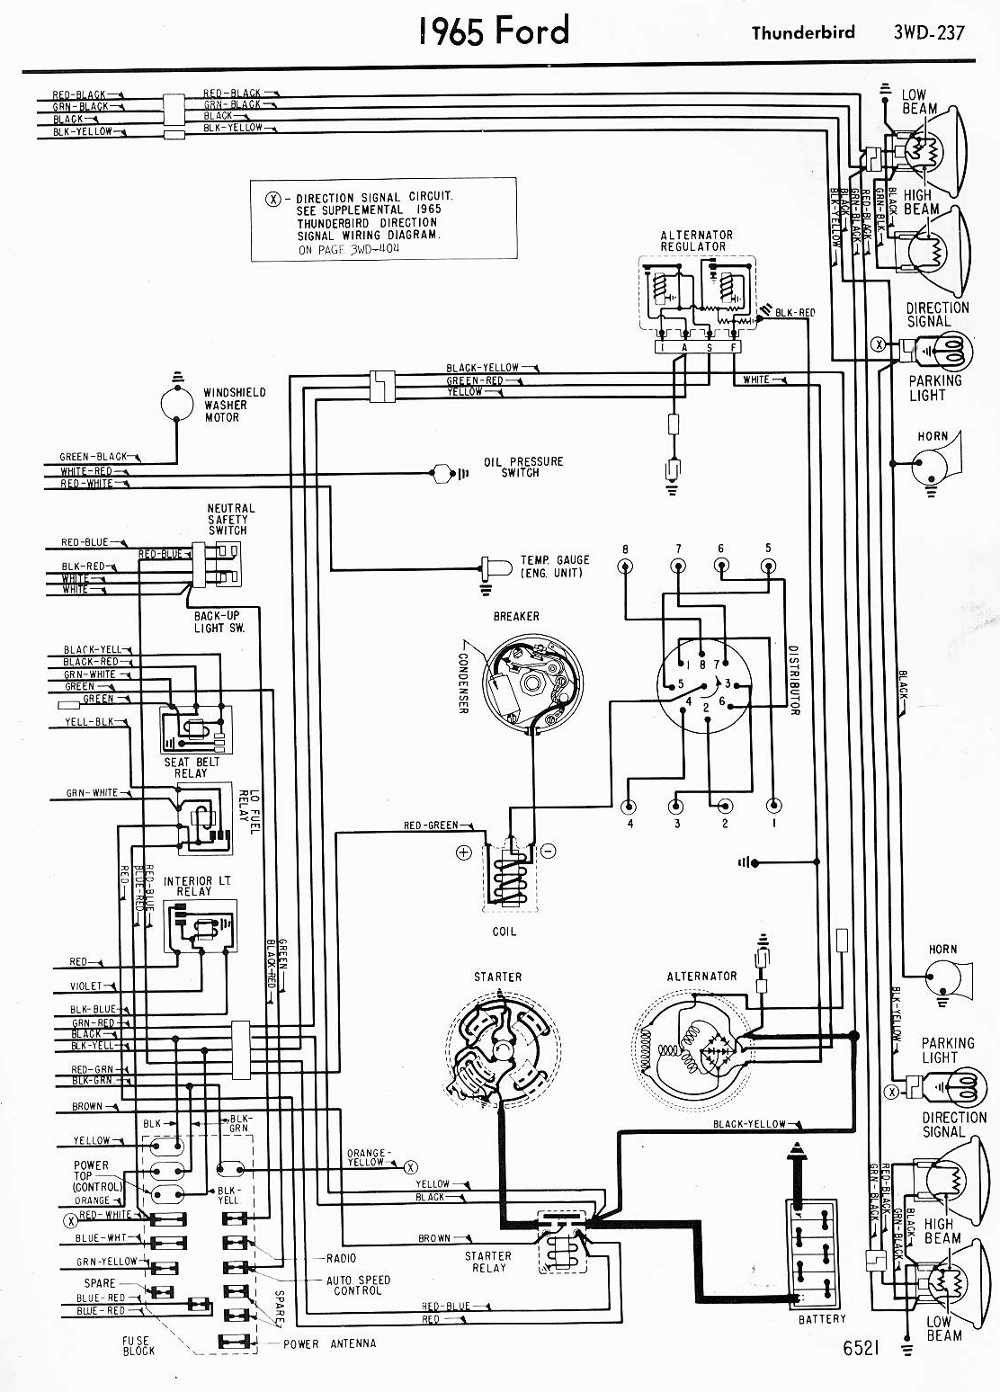 65 ford charge controller wiring diagram 1 wiring diagram source